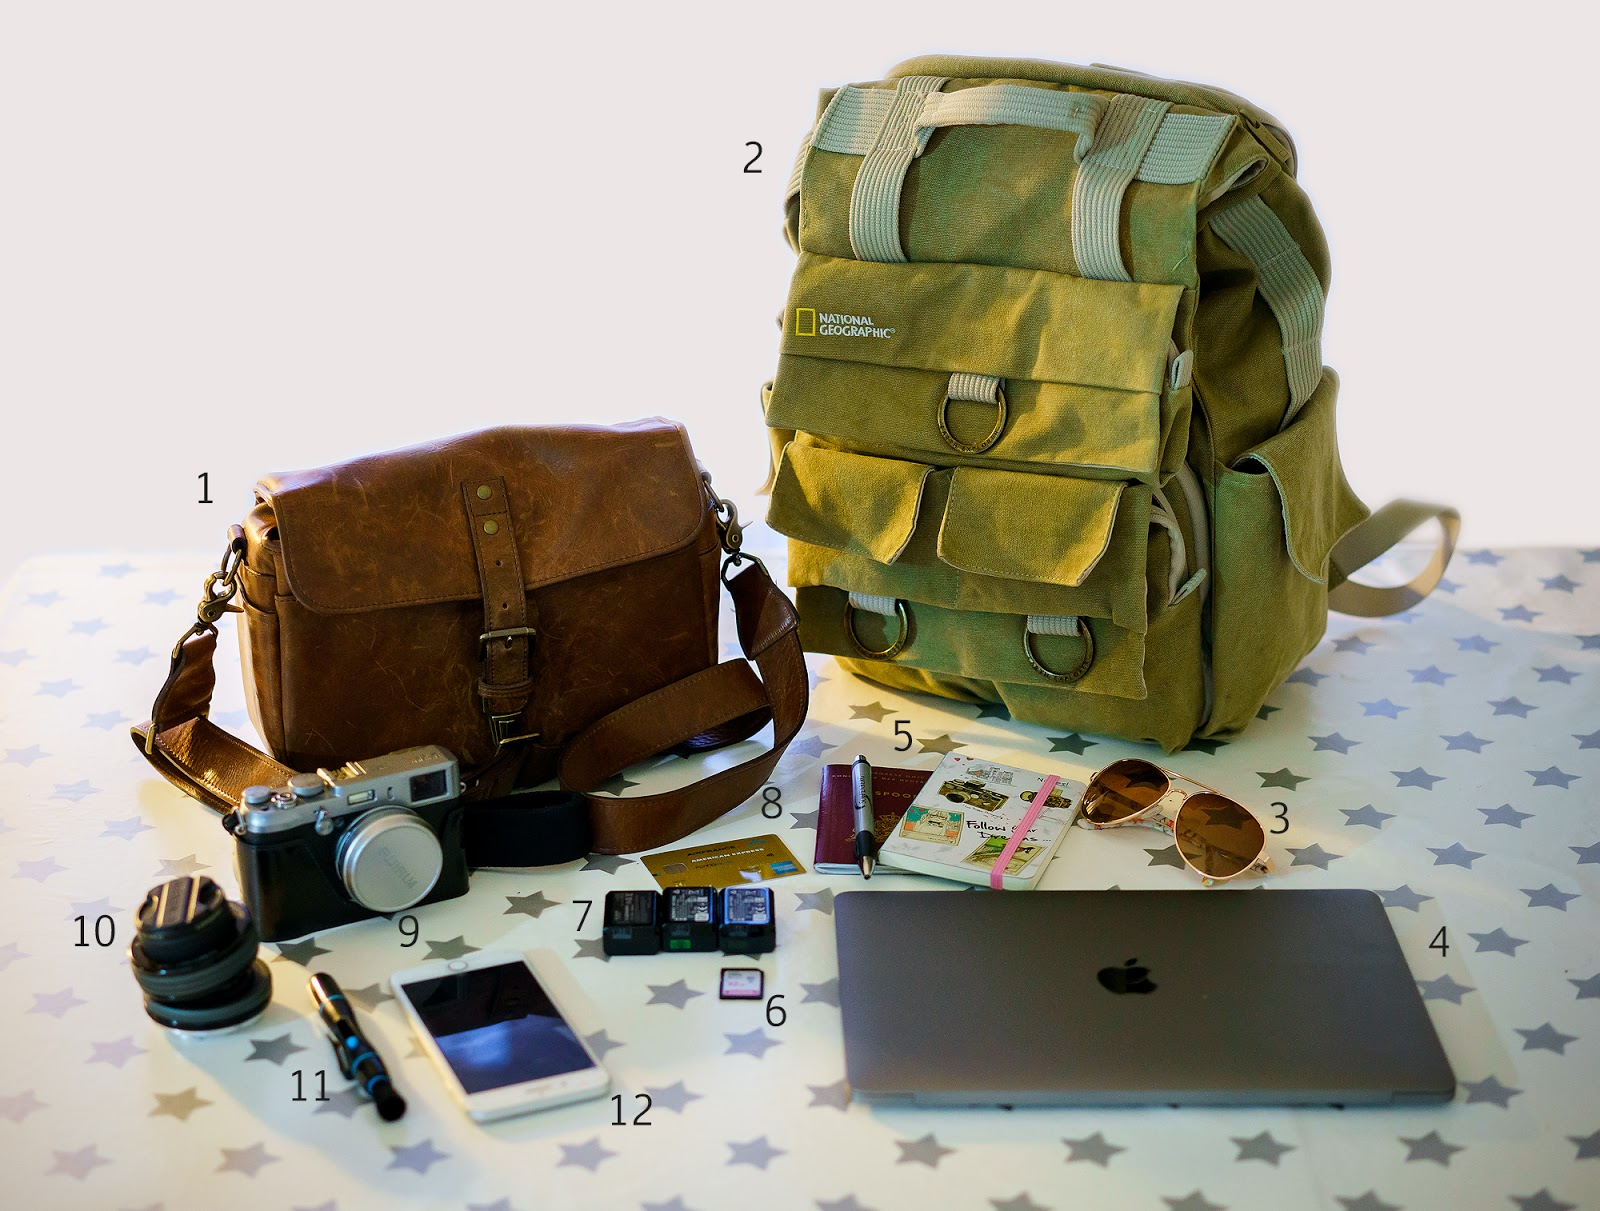 Photography travel gear by Willie Kers